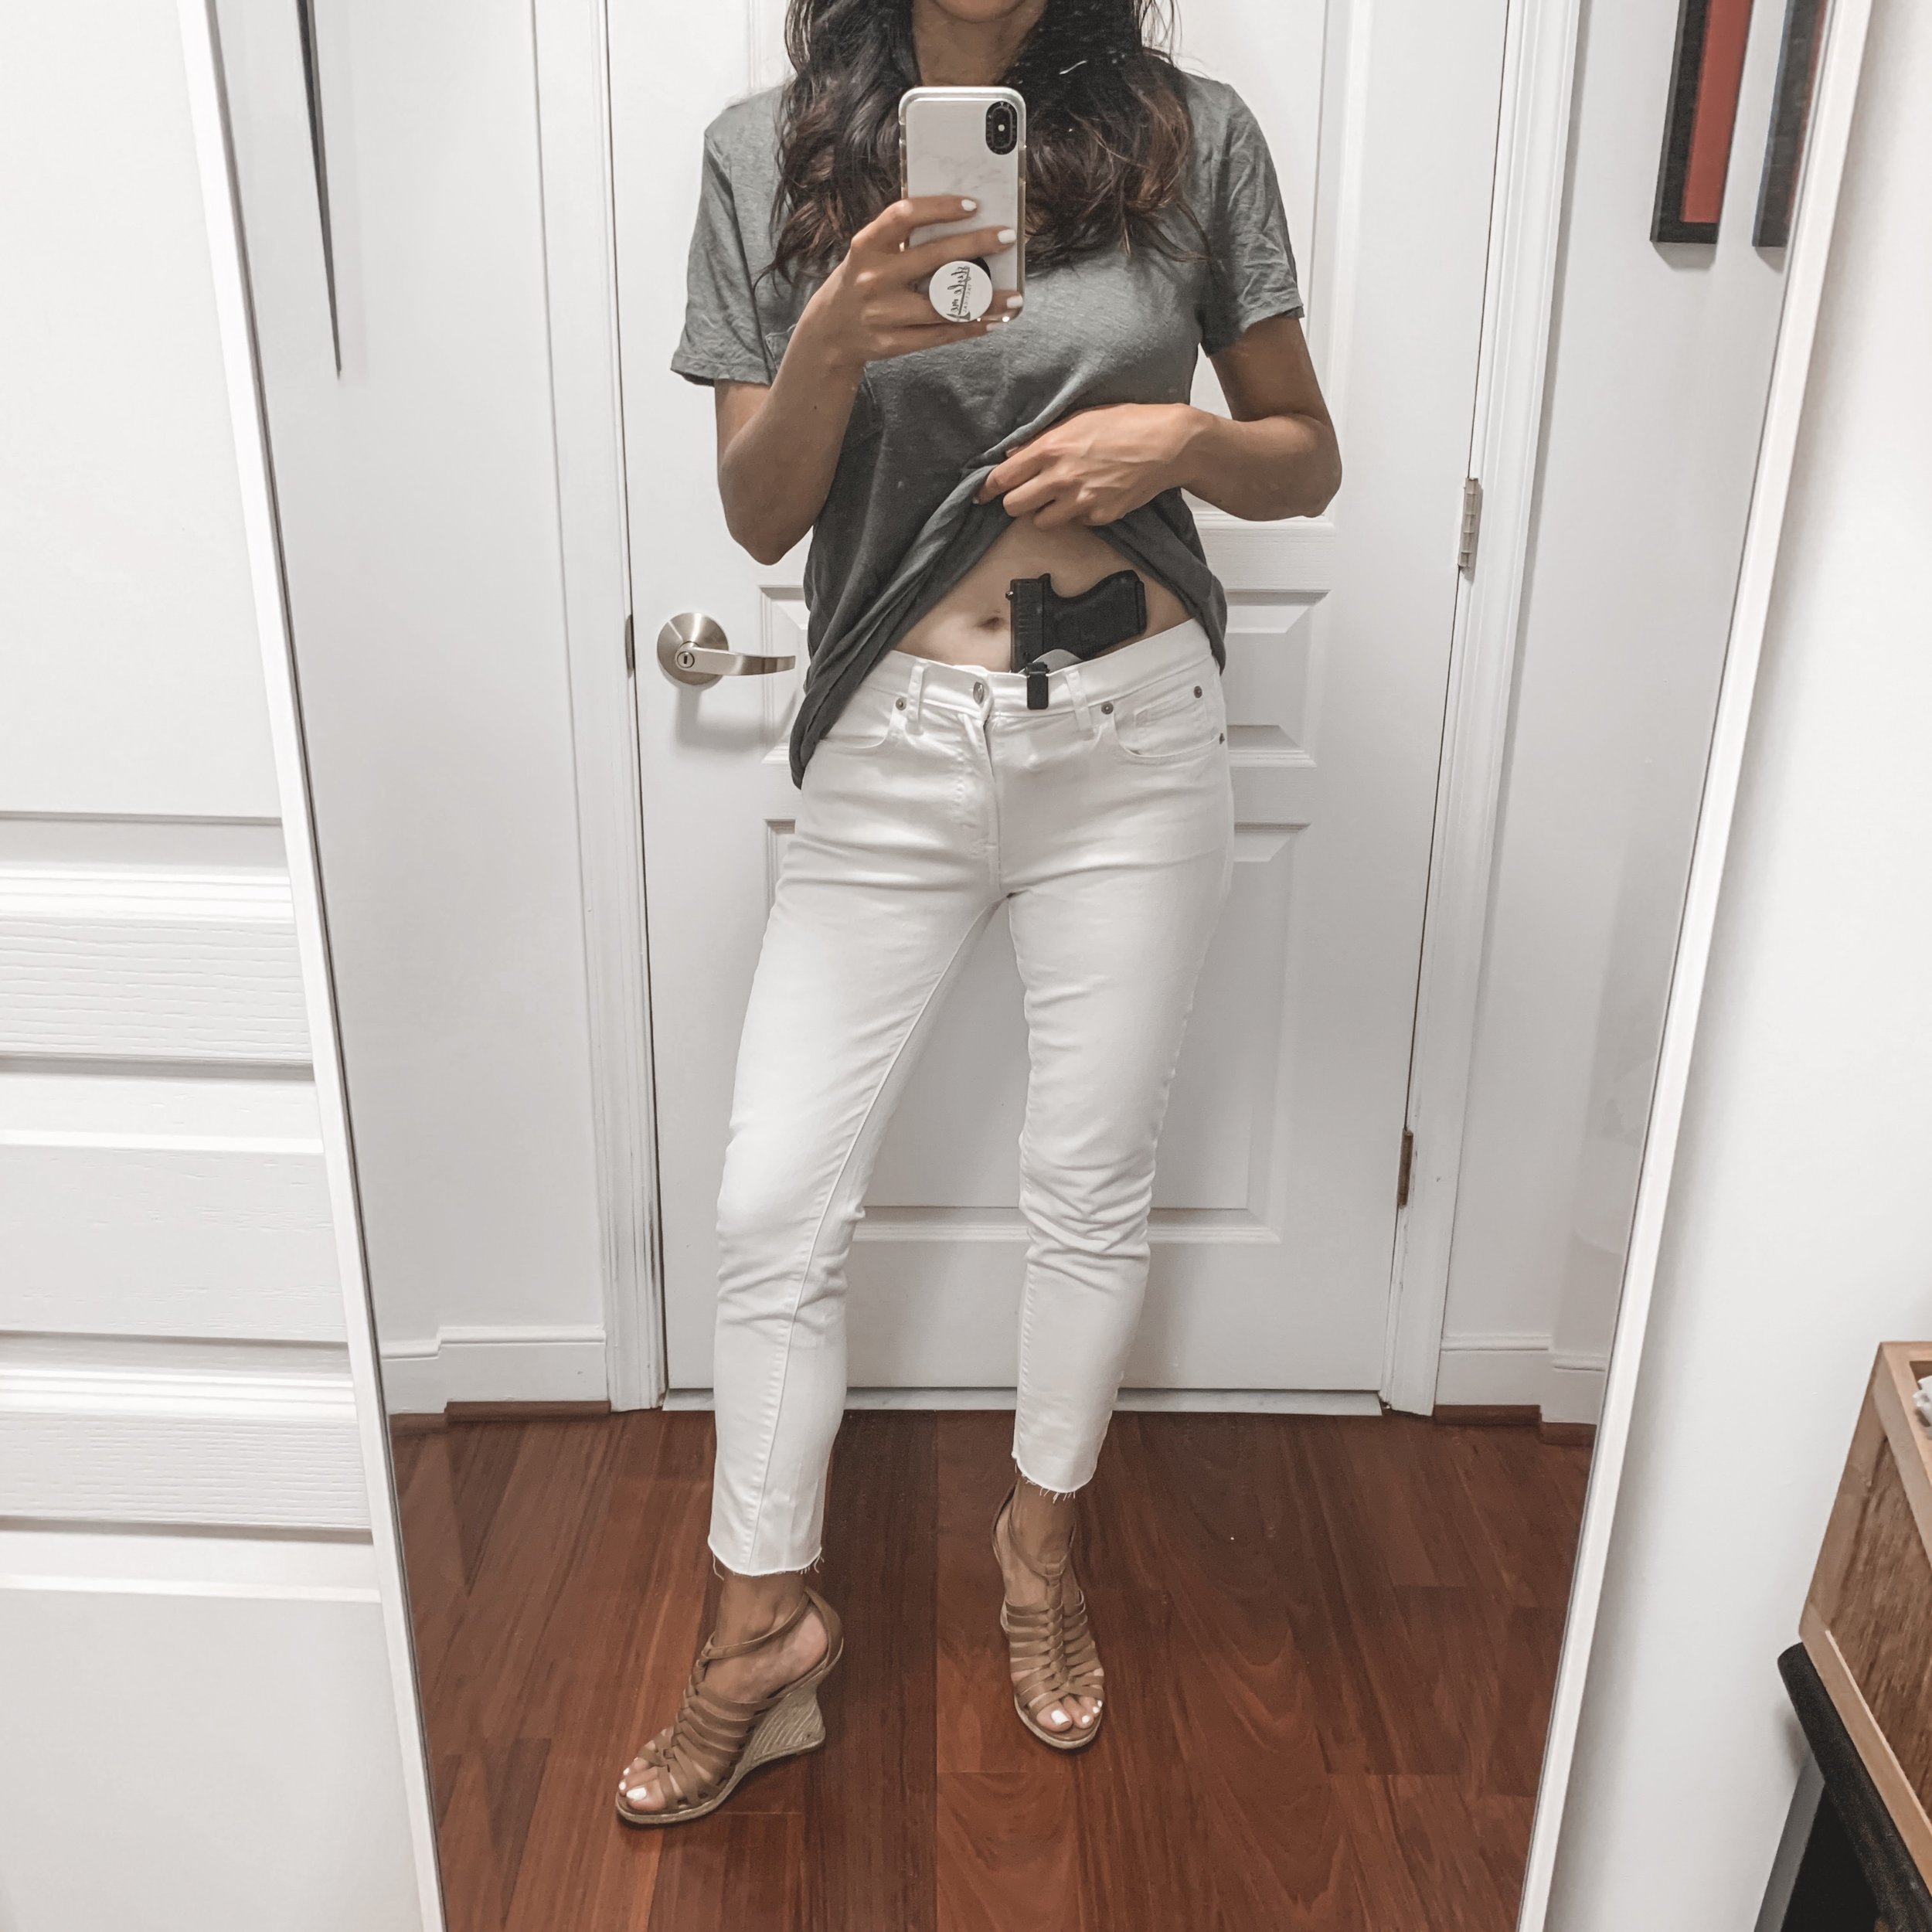 — Outfit Details —  J. Crew Shirt     Topshop Jeans      Sam Edelman Shoes      — Concealed Carry Details — Self-Defense Tool: Glock 43   Holster:       Blacksmith Tactical Beltless IWB w/UltiClip     *   Flashlight:      SureFire Stiletto       (*use code StyleMe10 for 10% off at      blacksmithtactical.com     )